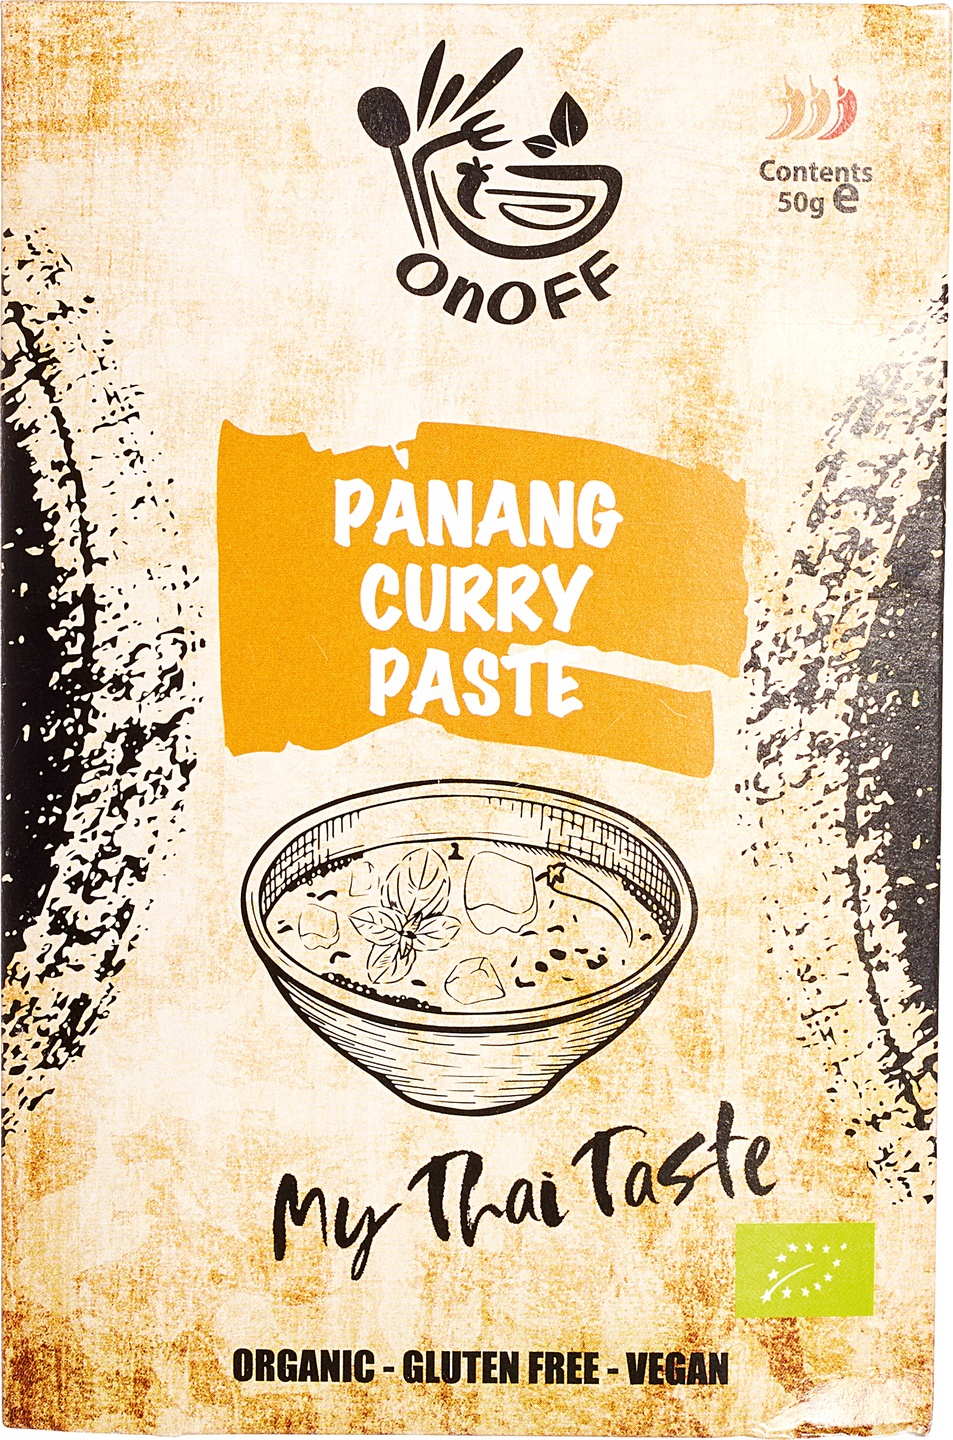 Biologische onoff spices! Thaise penang curry pasta 50 gr